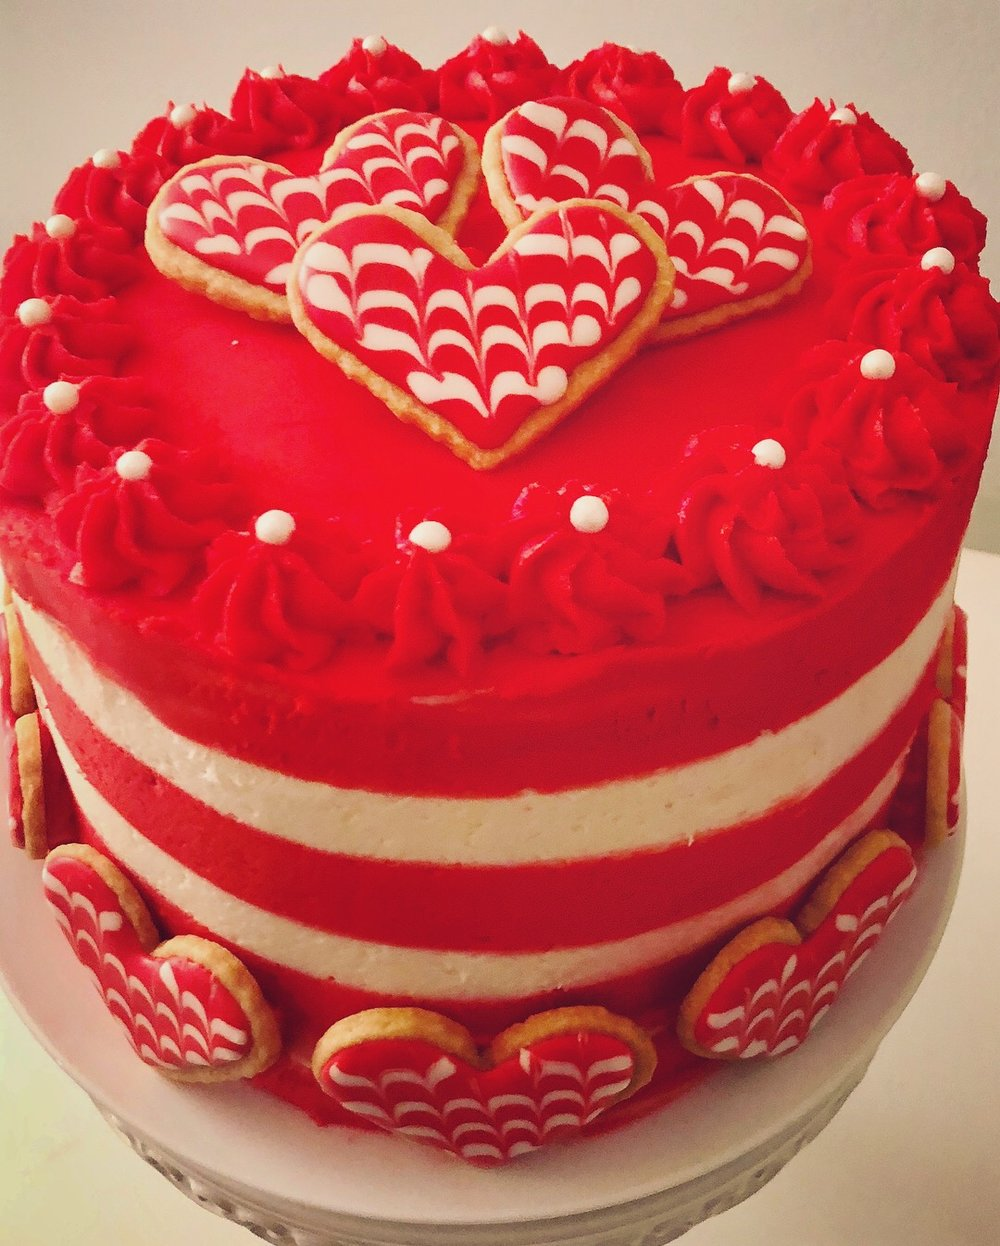 Valentine's Theme Cake   This cake has heart shape cookies around it to celebrate love for Valentine's day.